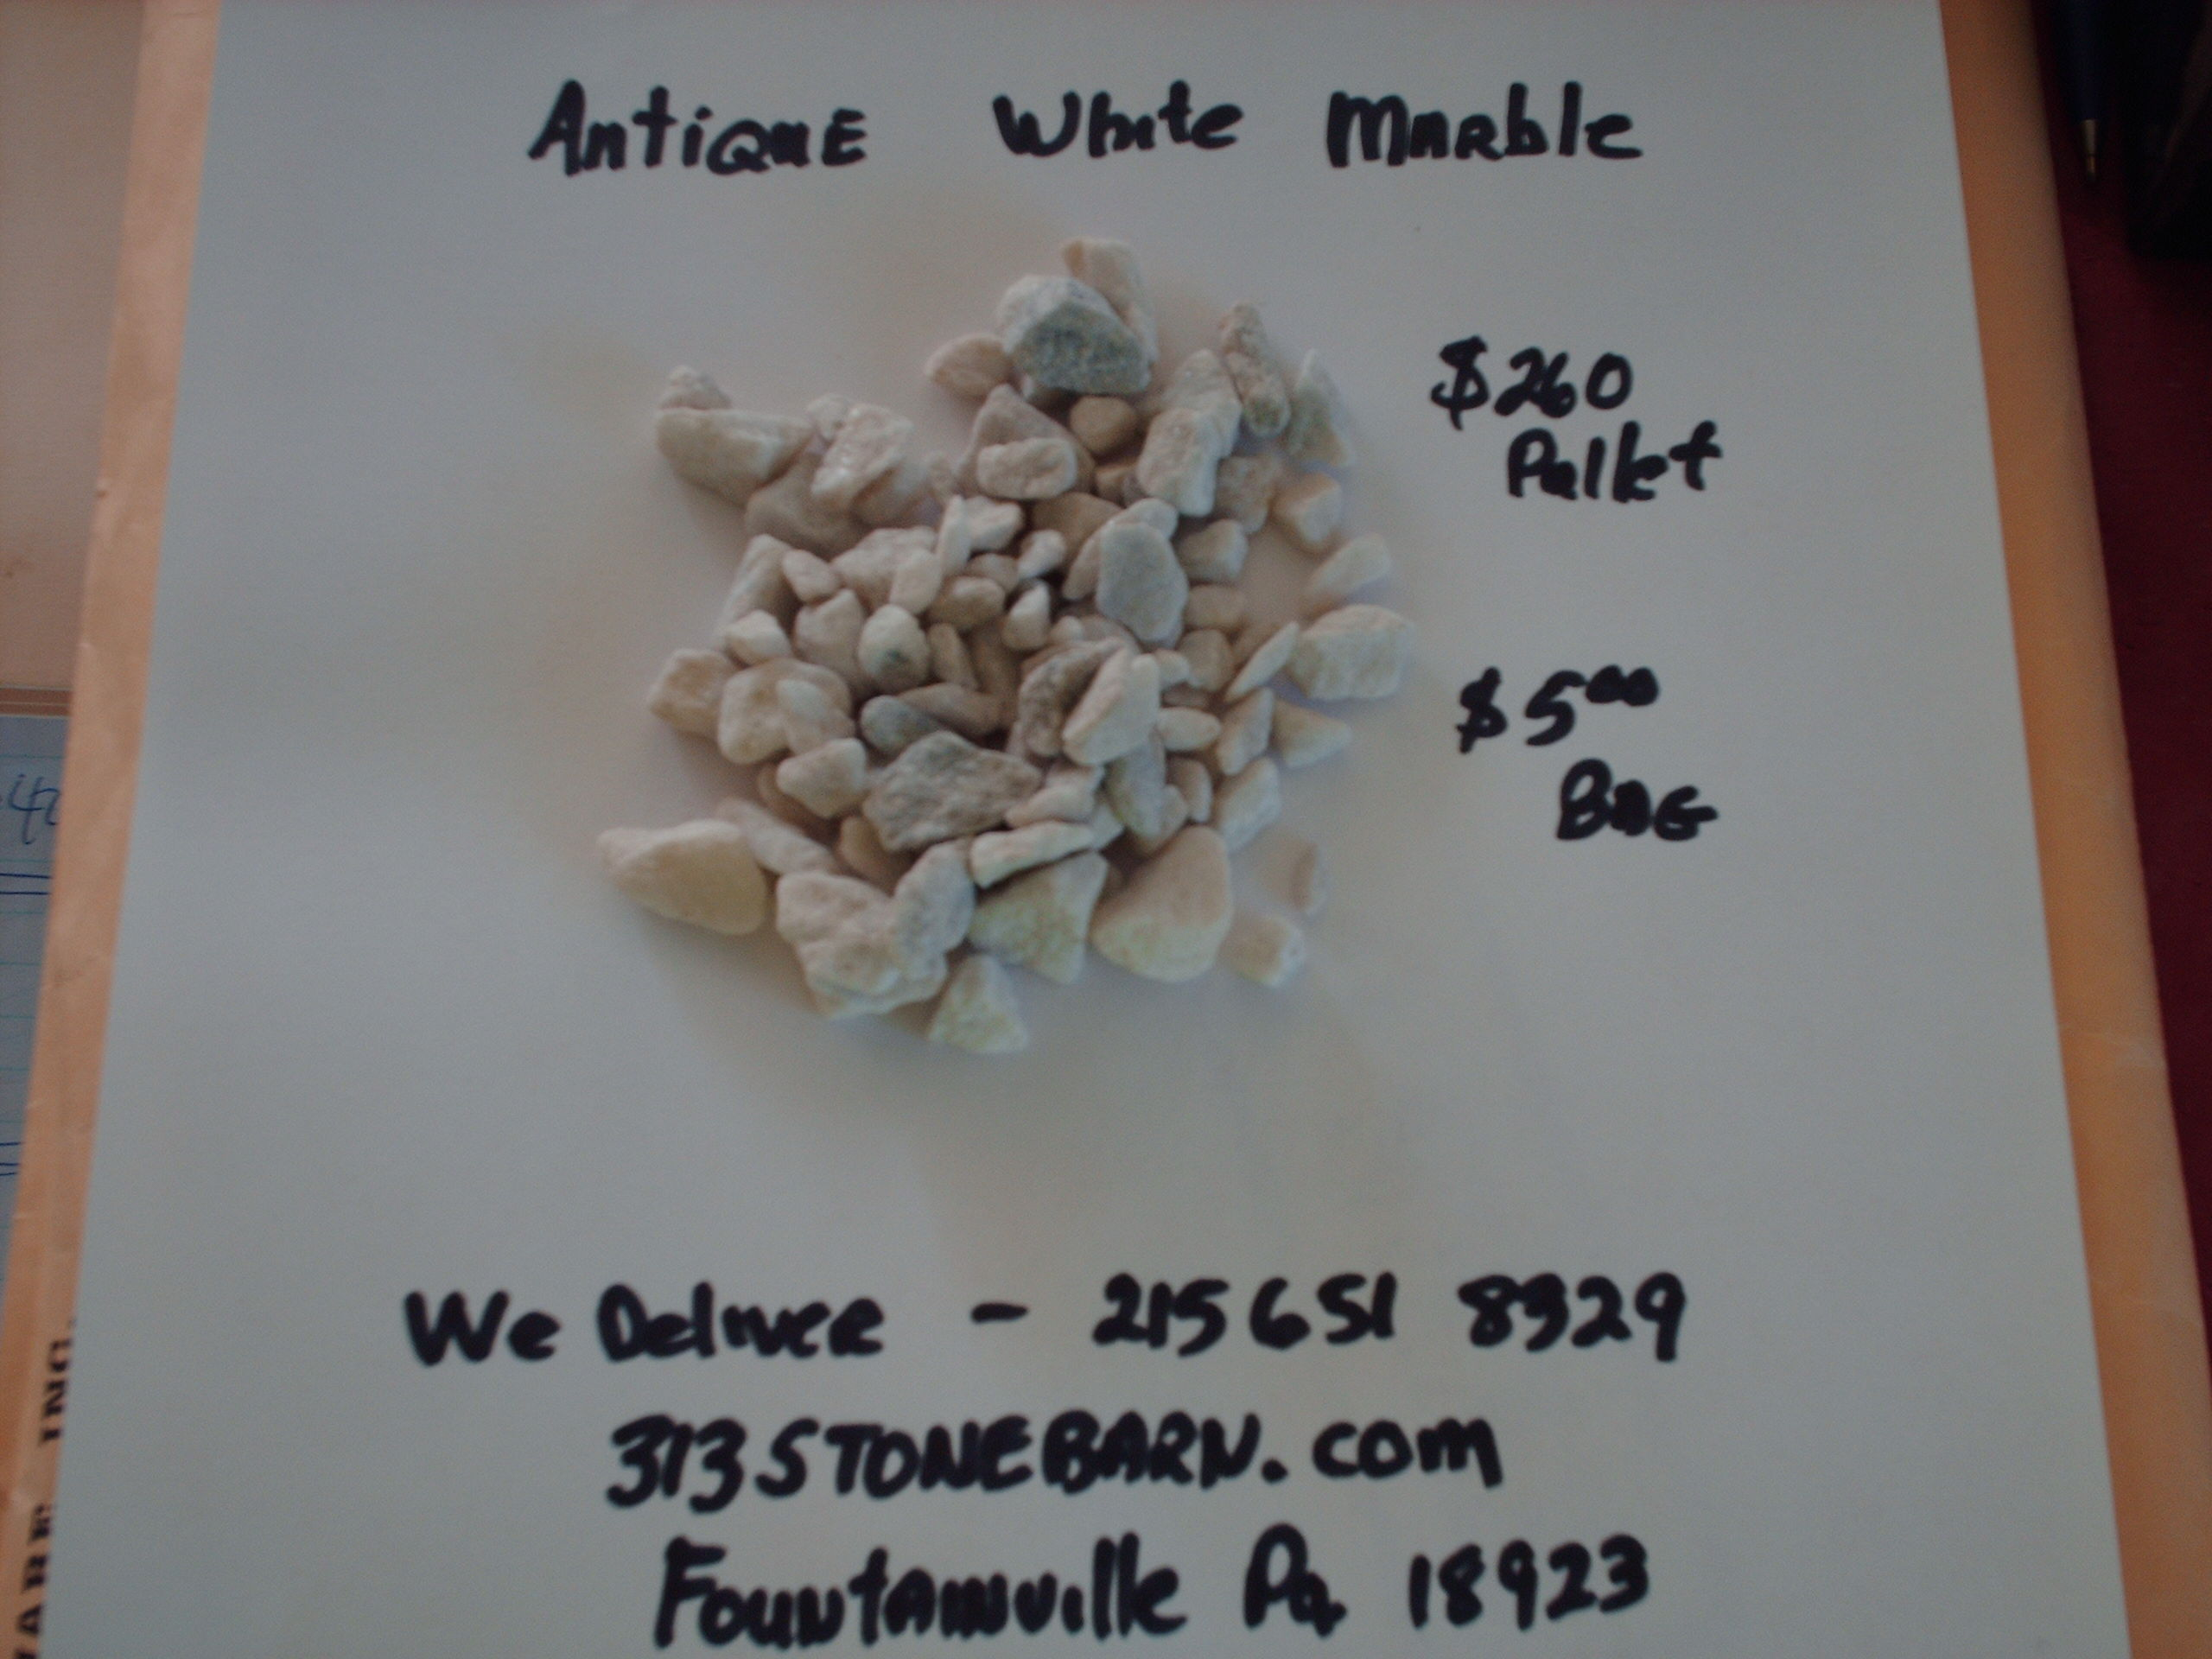 We deliver pallets of these Antique White Marble chips.